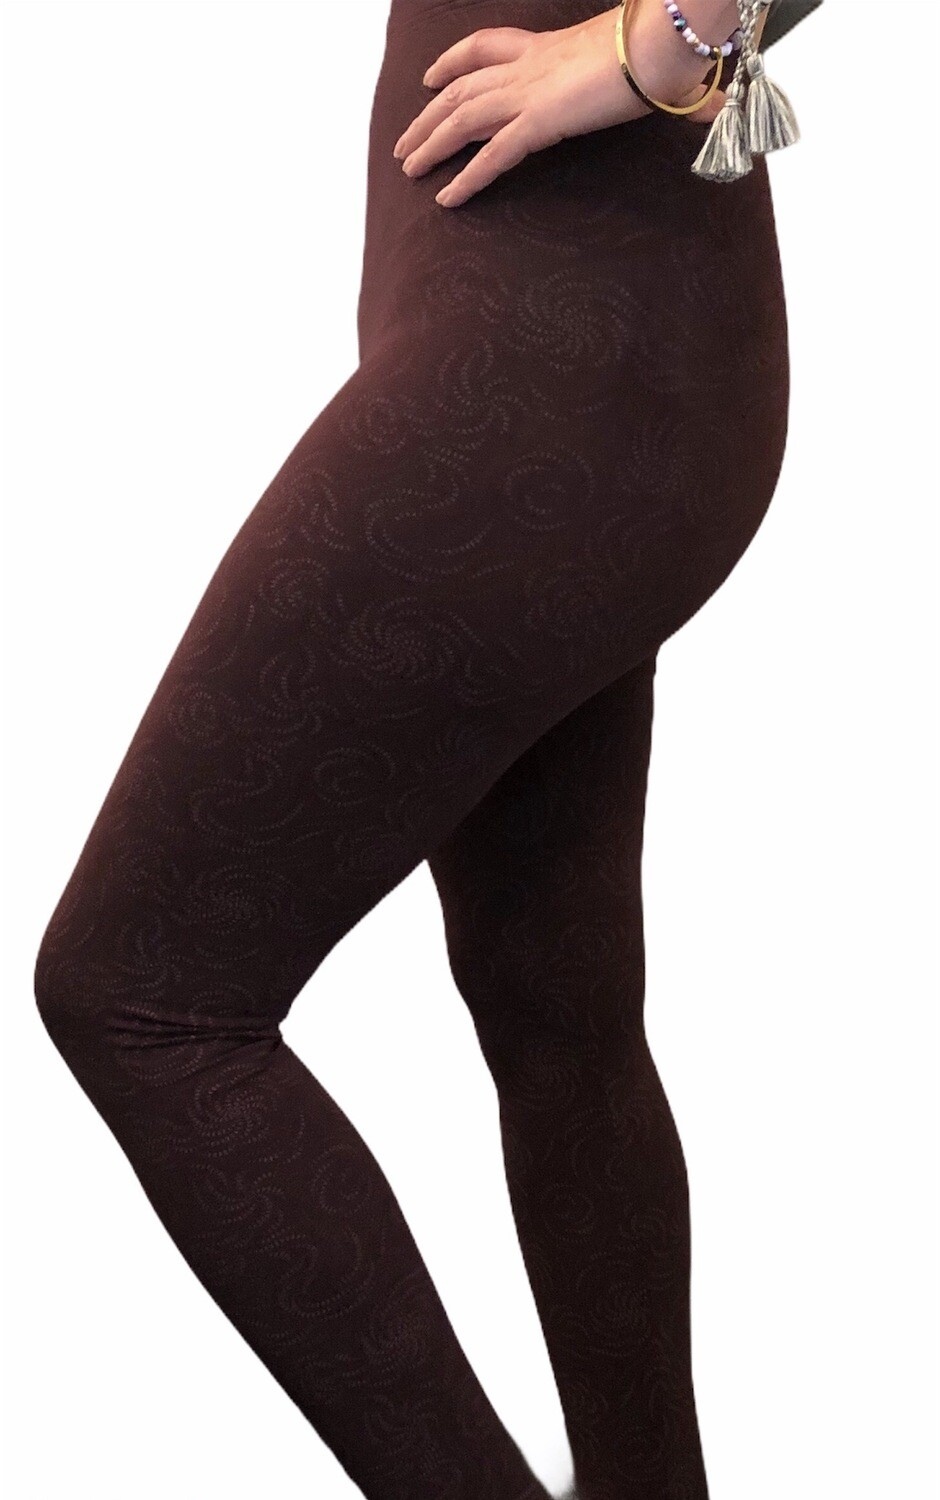 Leggings Adulto - Estampado Remolino Burgundy